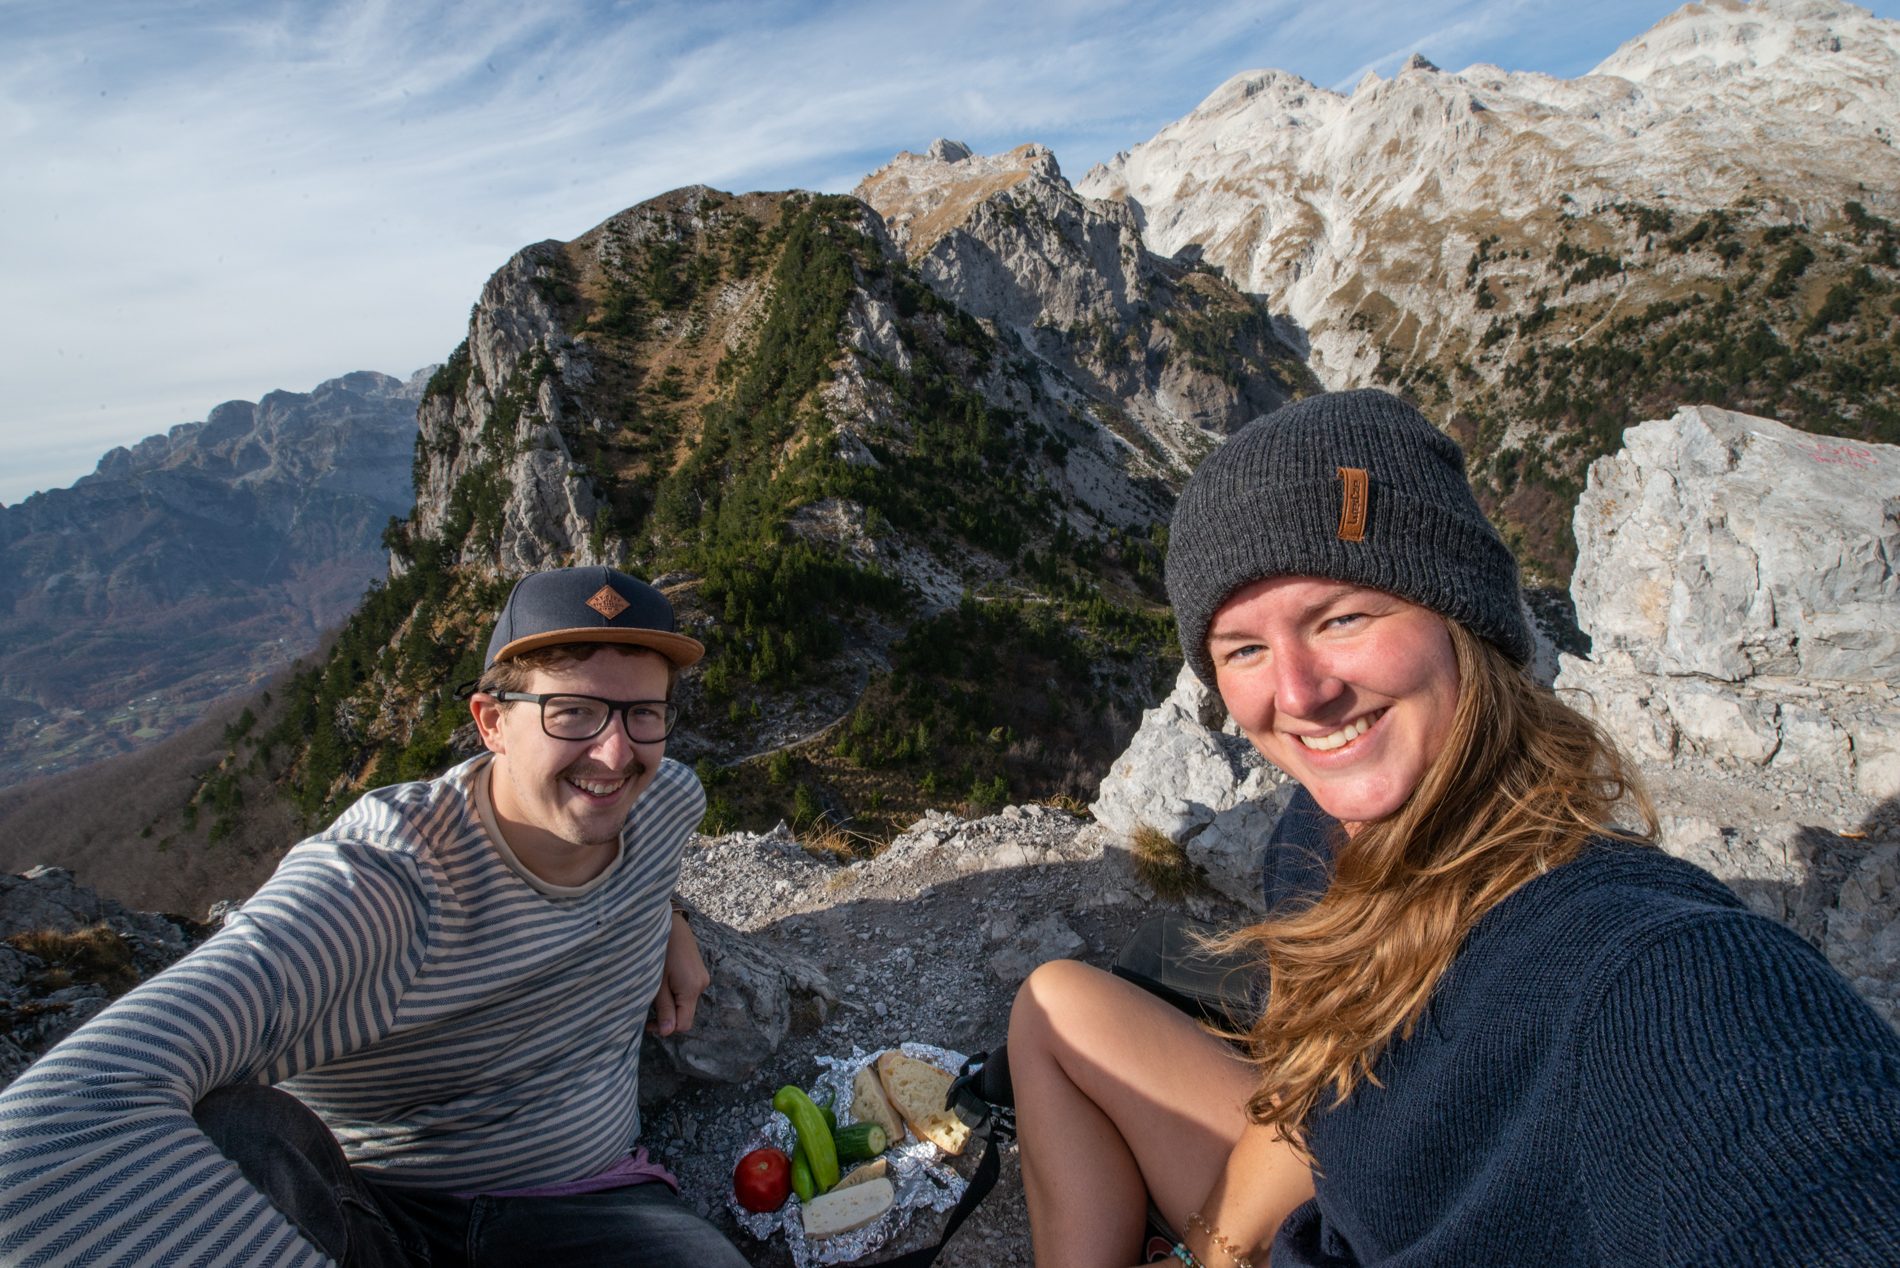 On the top of the Valbona peak, Ellisandme having their lunch. Great mountains on the background.